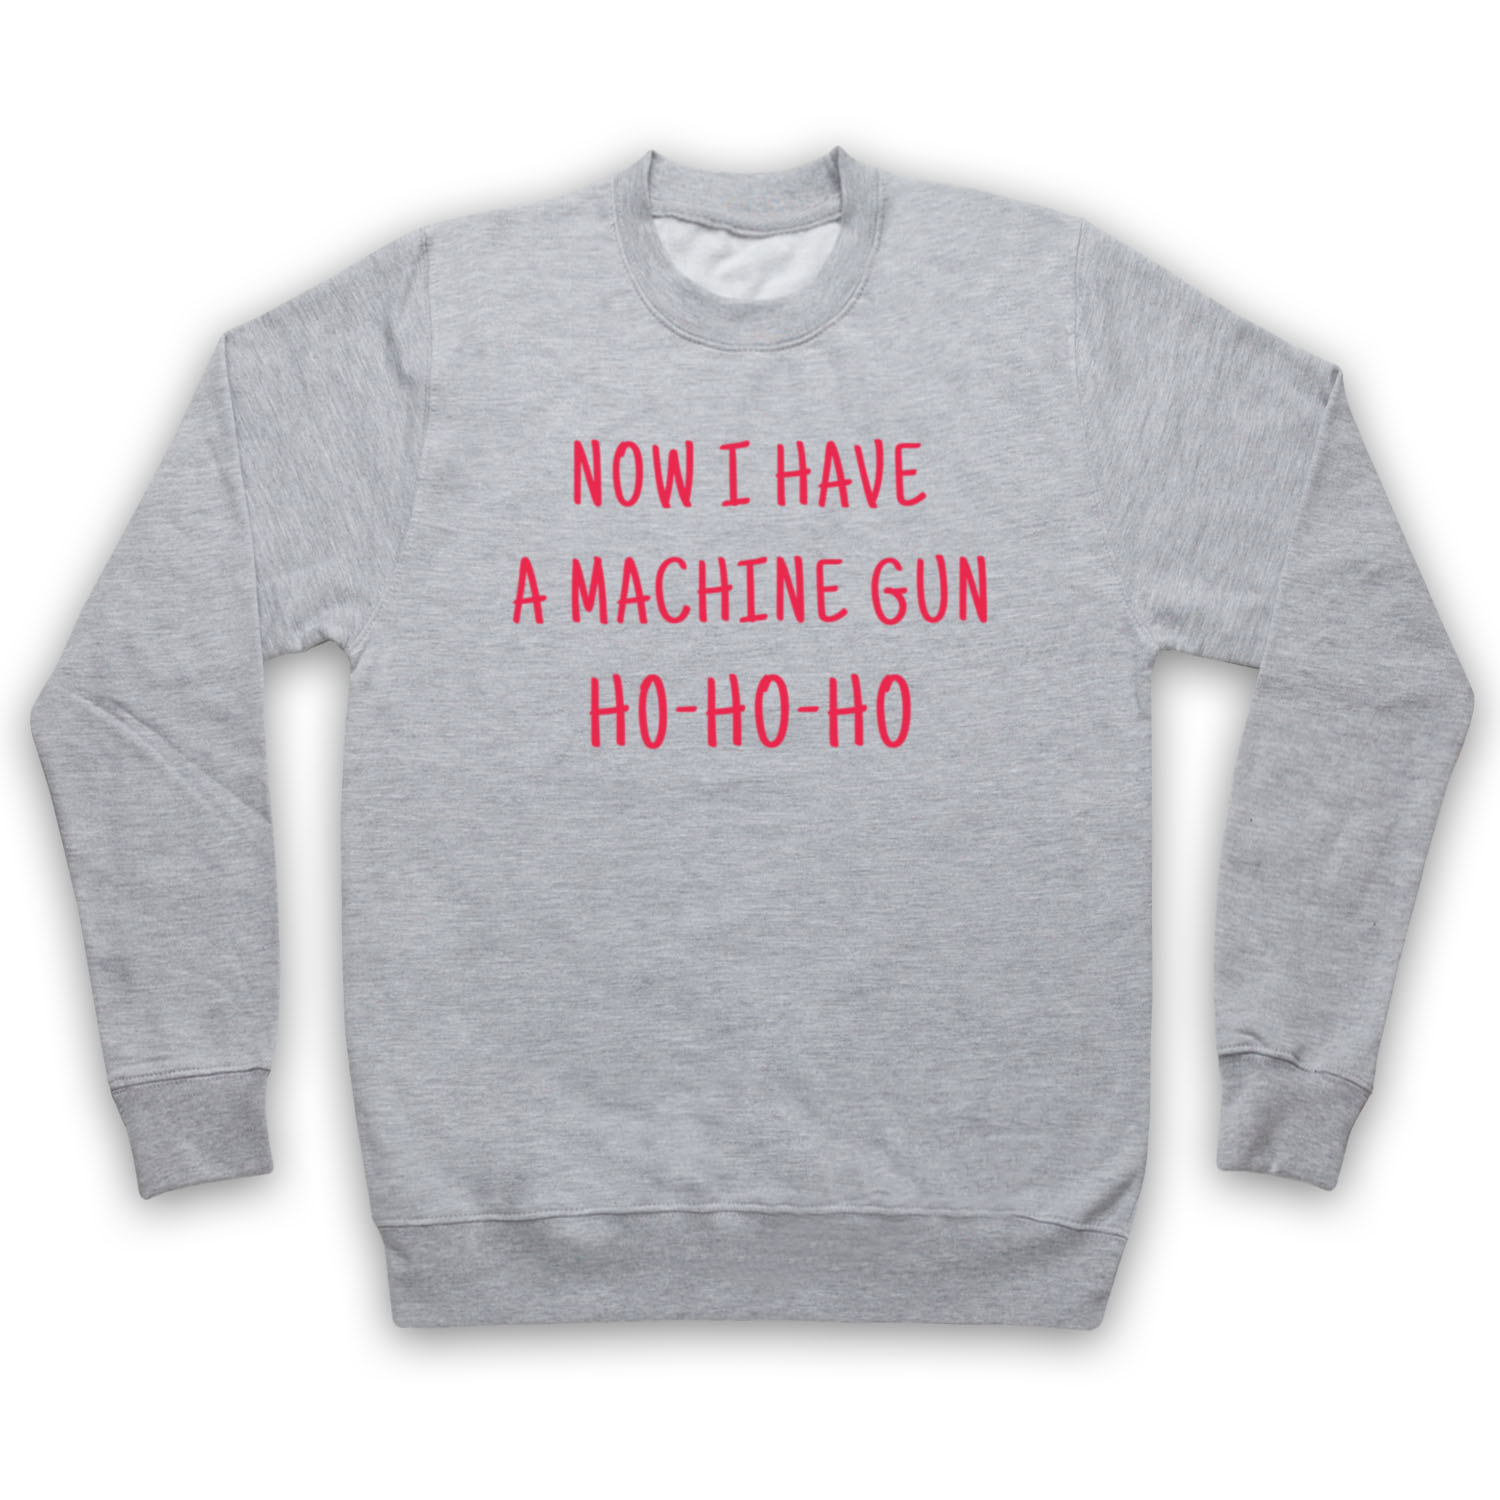 DIE HARD UNOFFICIAL NOW I HAVE A MACHINE GUN HO HO XMAS ADULTS ...